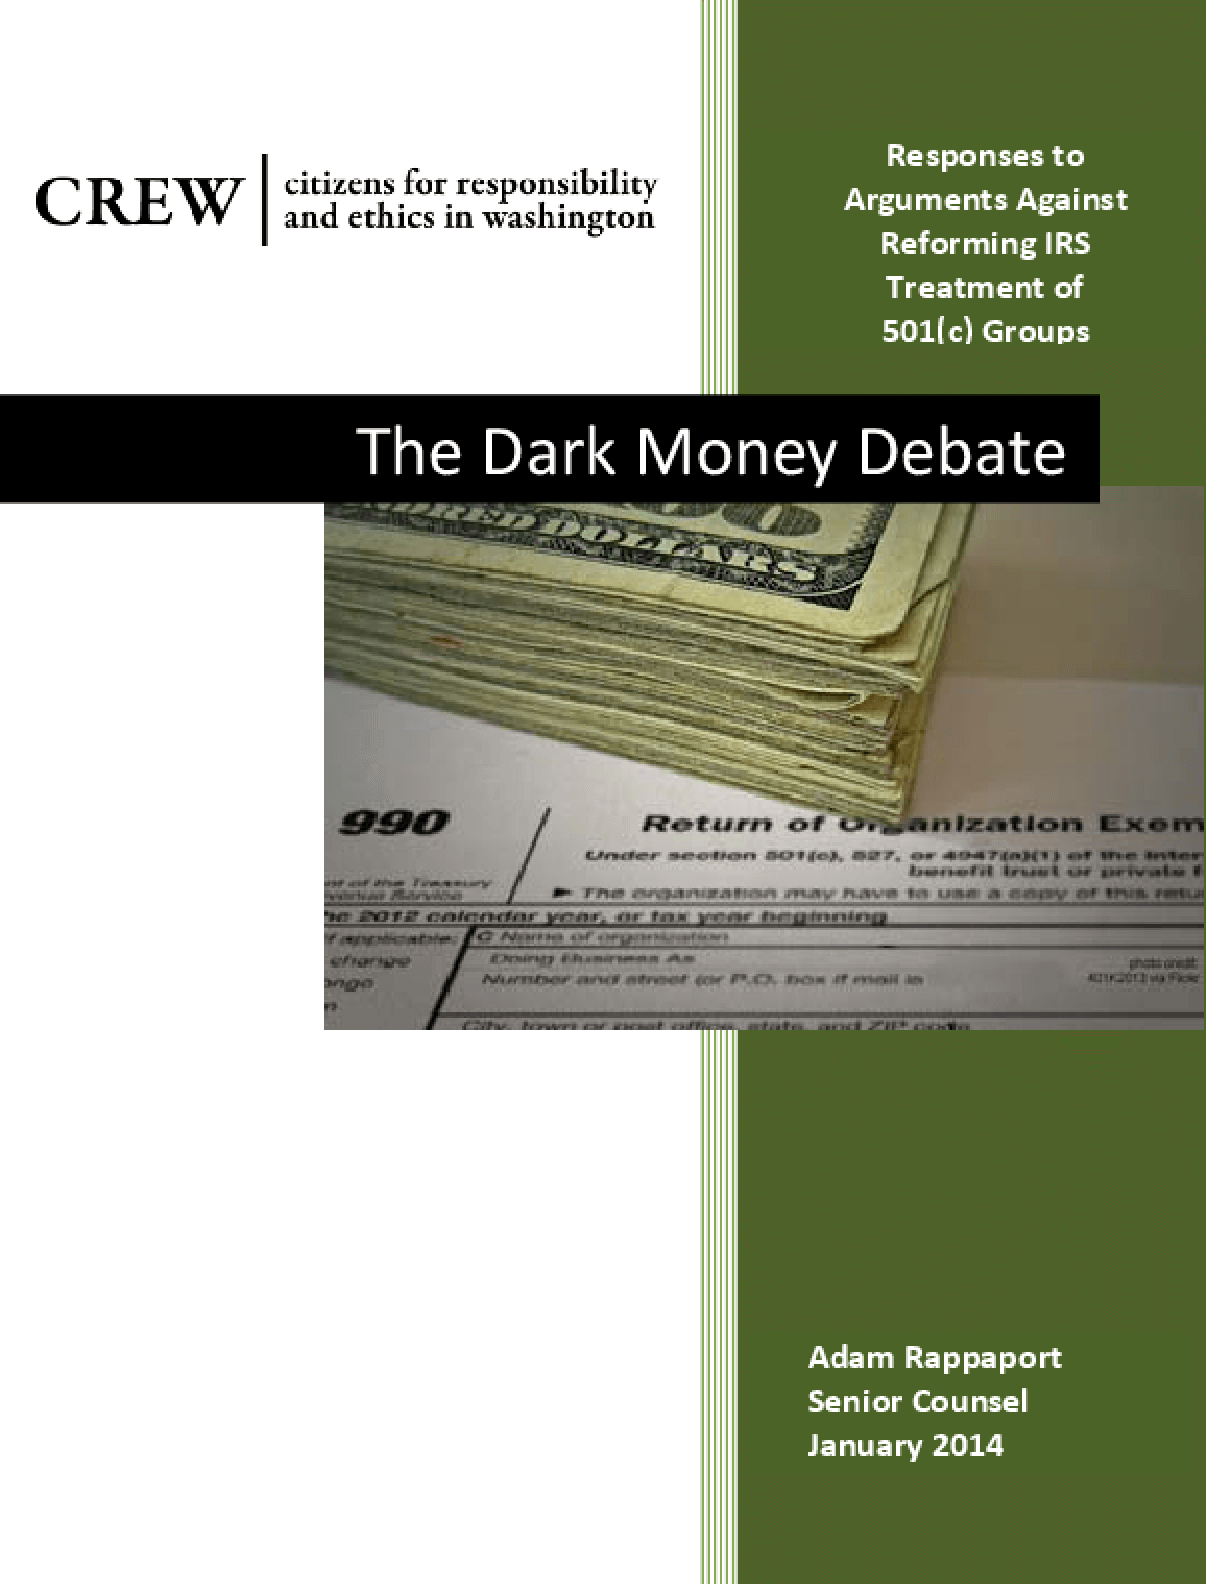 Dark Money Debate: Responses to Arguments Against Reforming IRS Treatment of 501(c) Groups